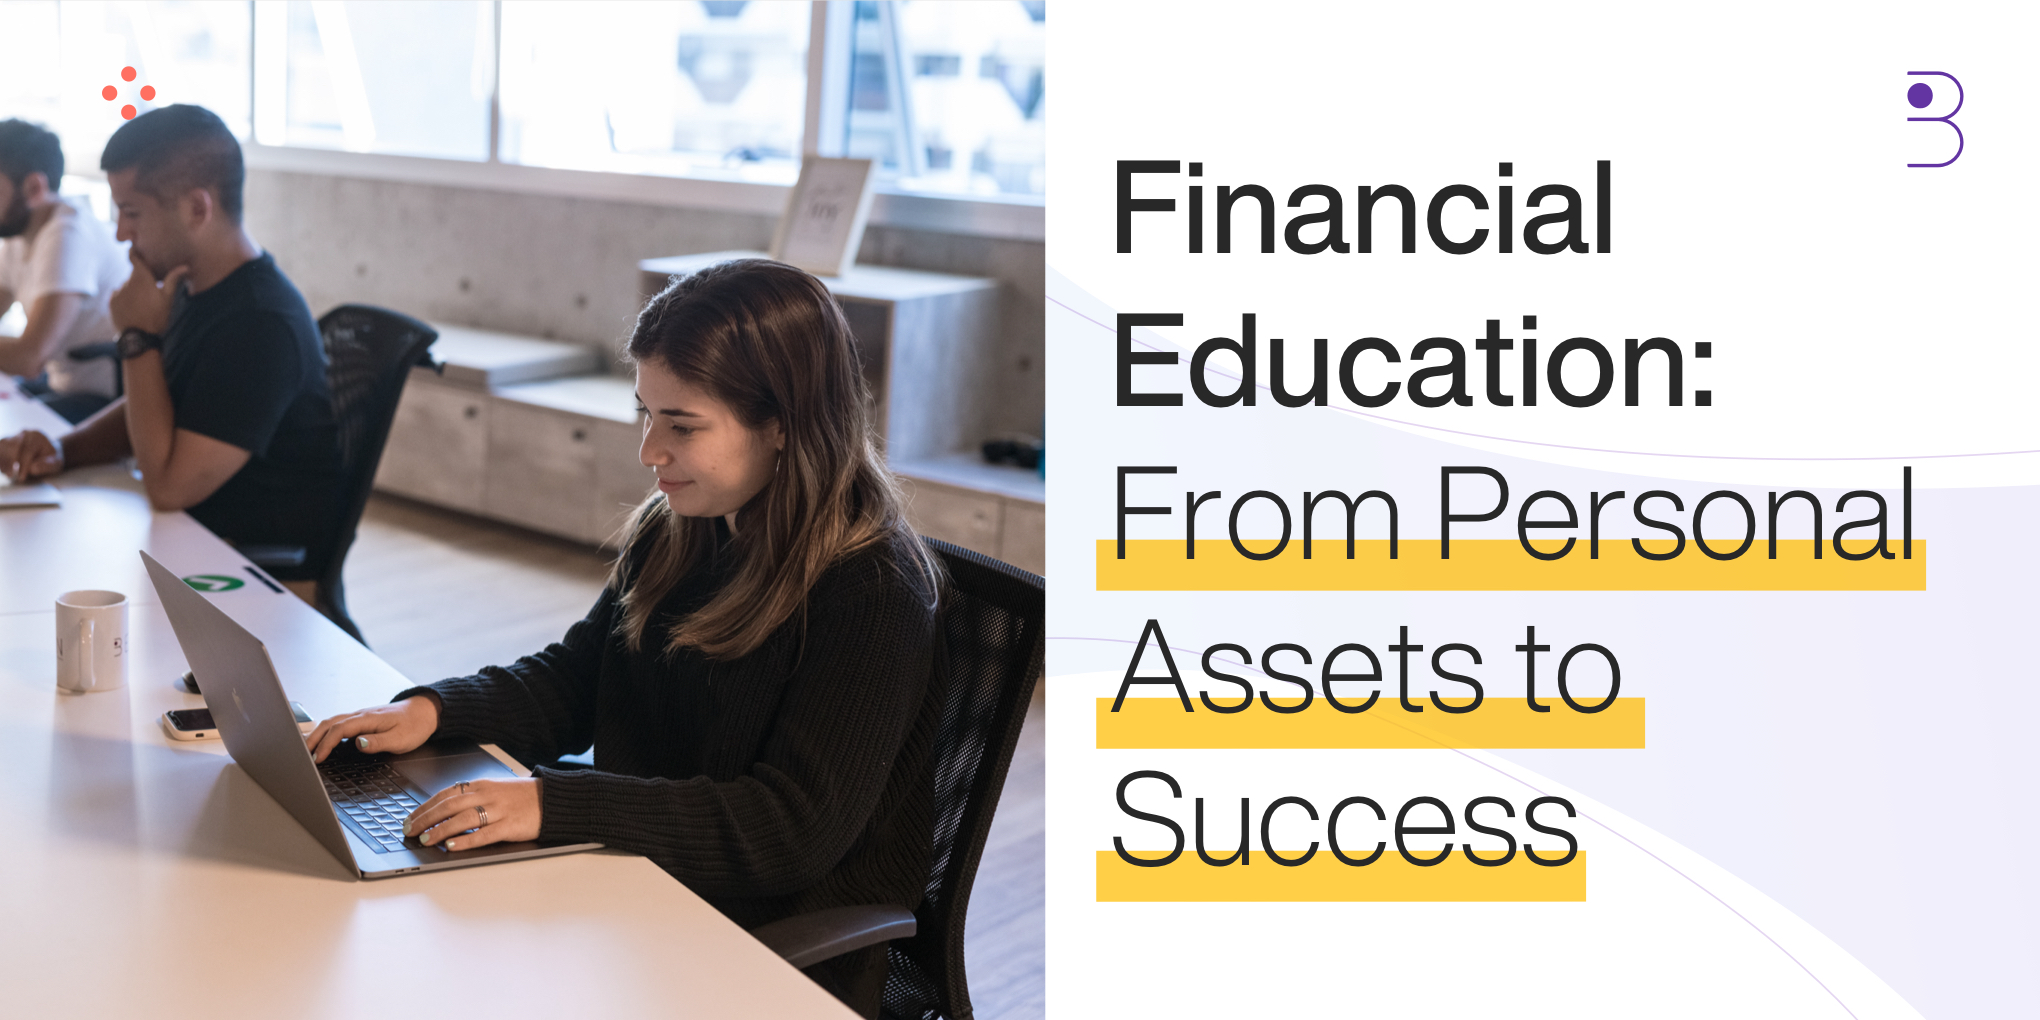 Financial Education: From Personal Assets to Success